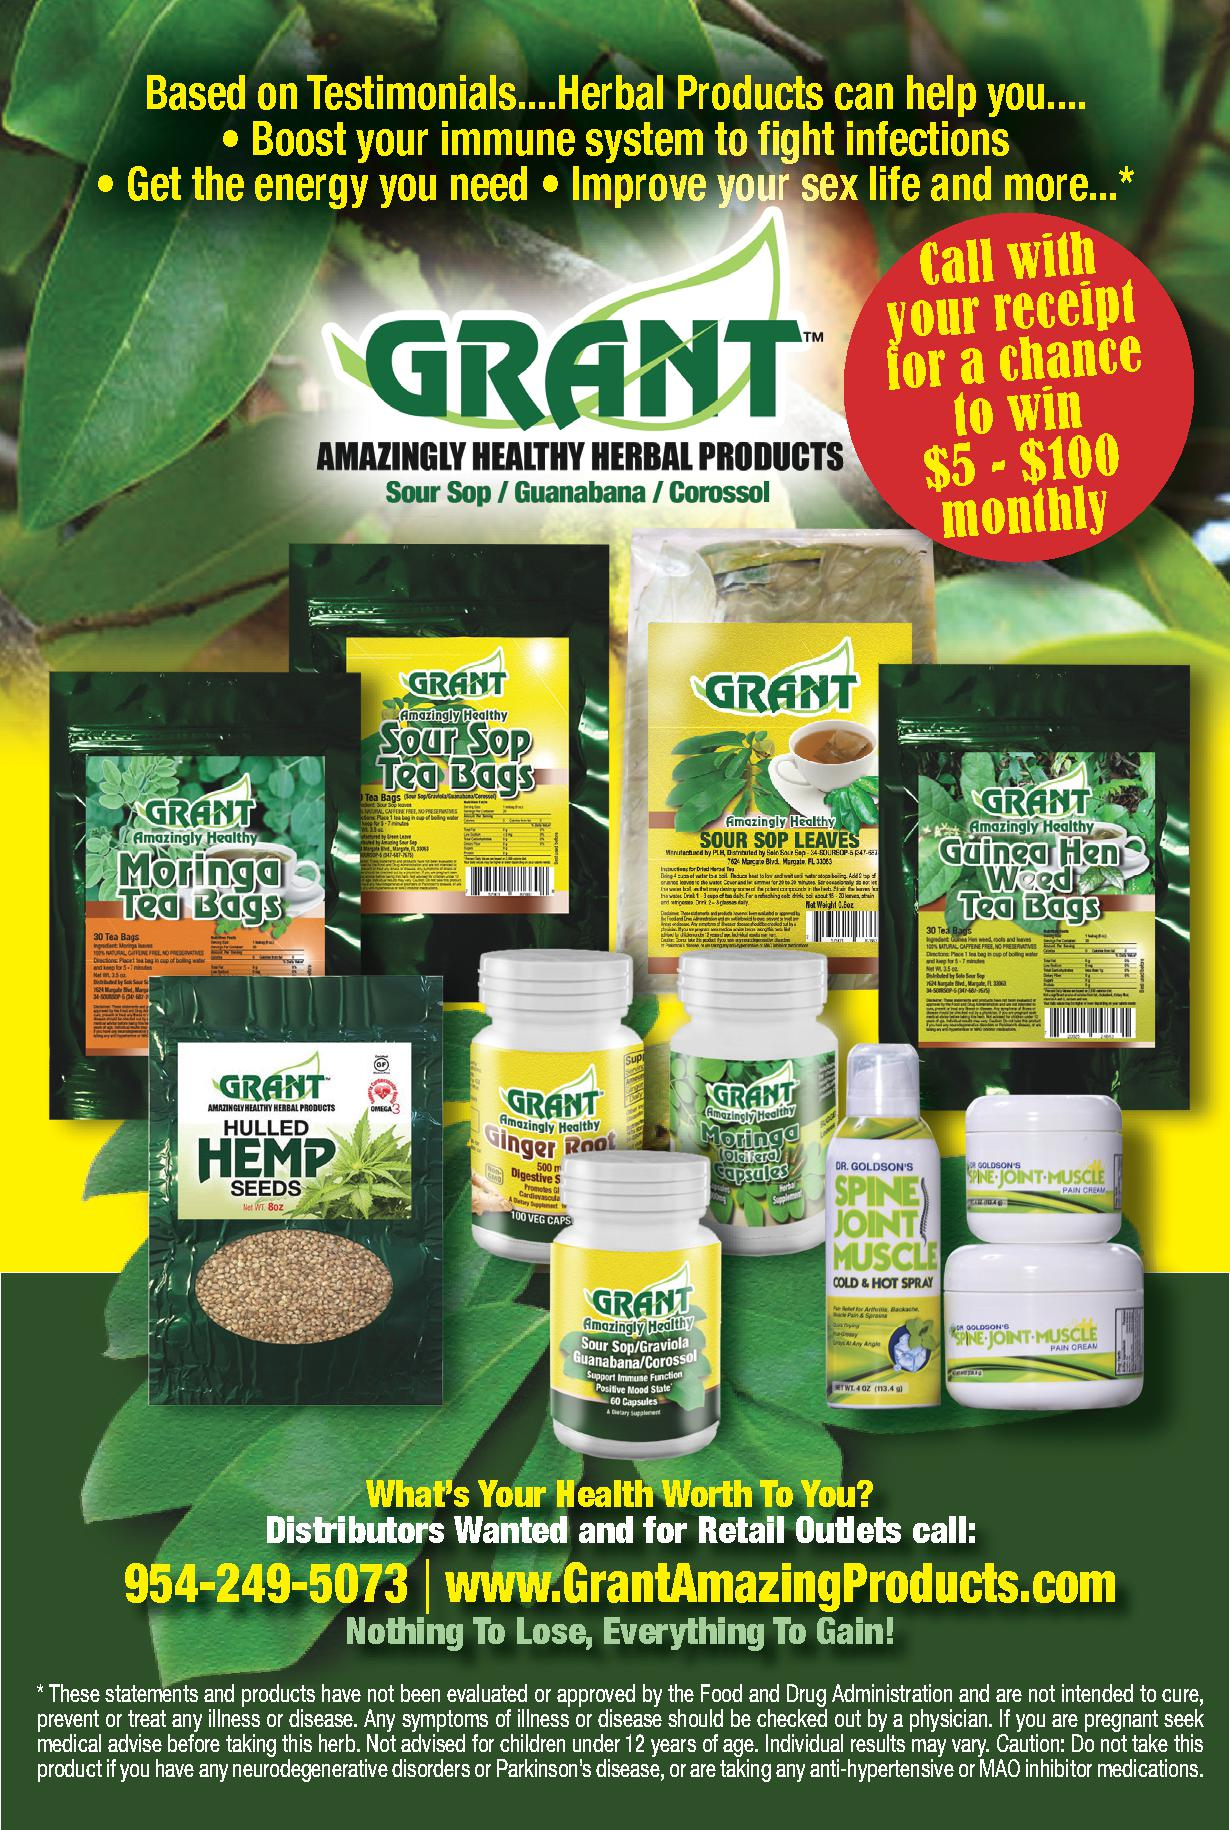 Grant Amazingly Healthy Herbal Products